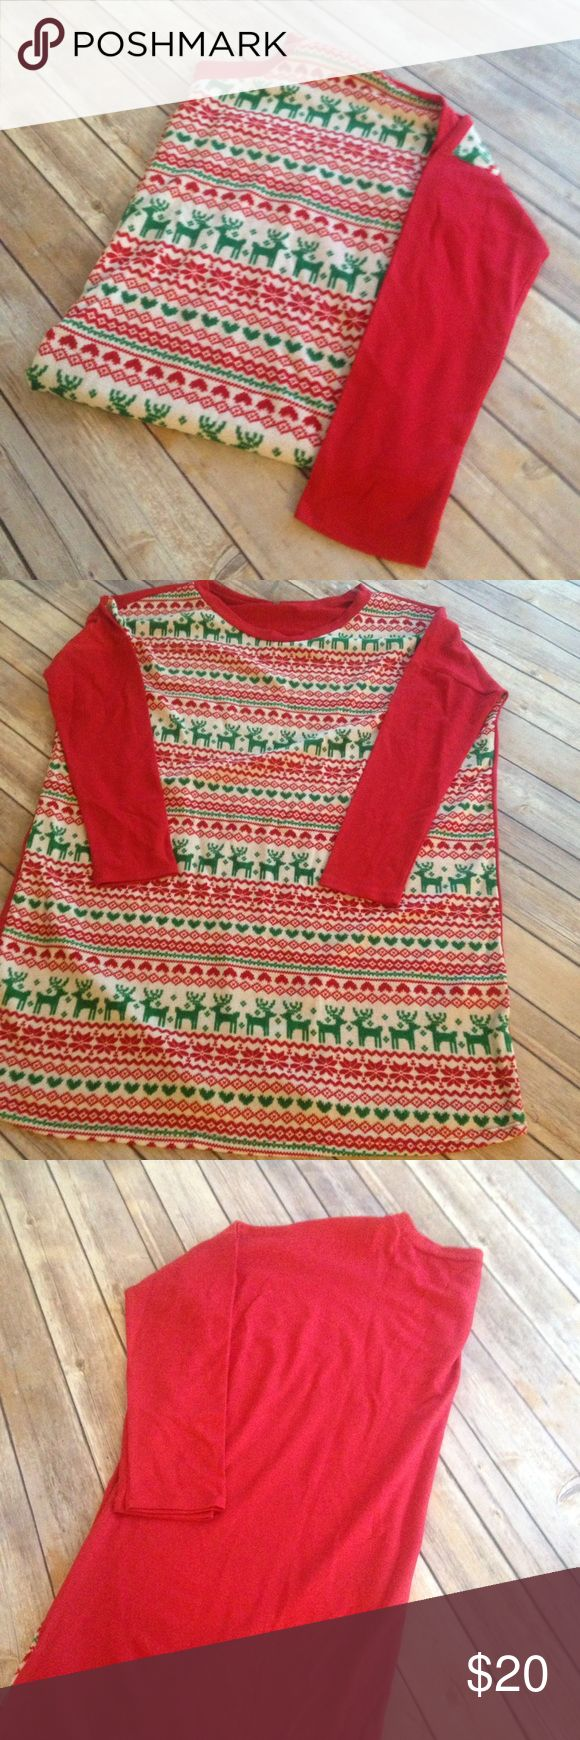 Red Lolly Holiday Reindeer Tunic Size Large Red Lolly Christmas Tunic with Reindeer. Size L. Cute Tunic with holiday print on front. Solid red arms and back. Never worn. NWOT. Red Lolly Tops Tunics